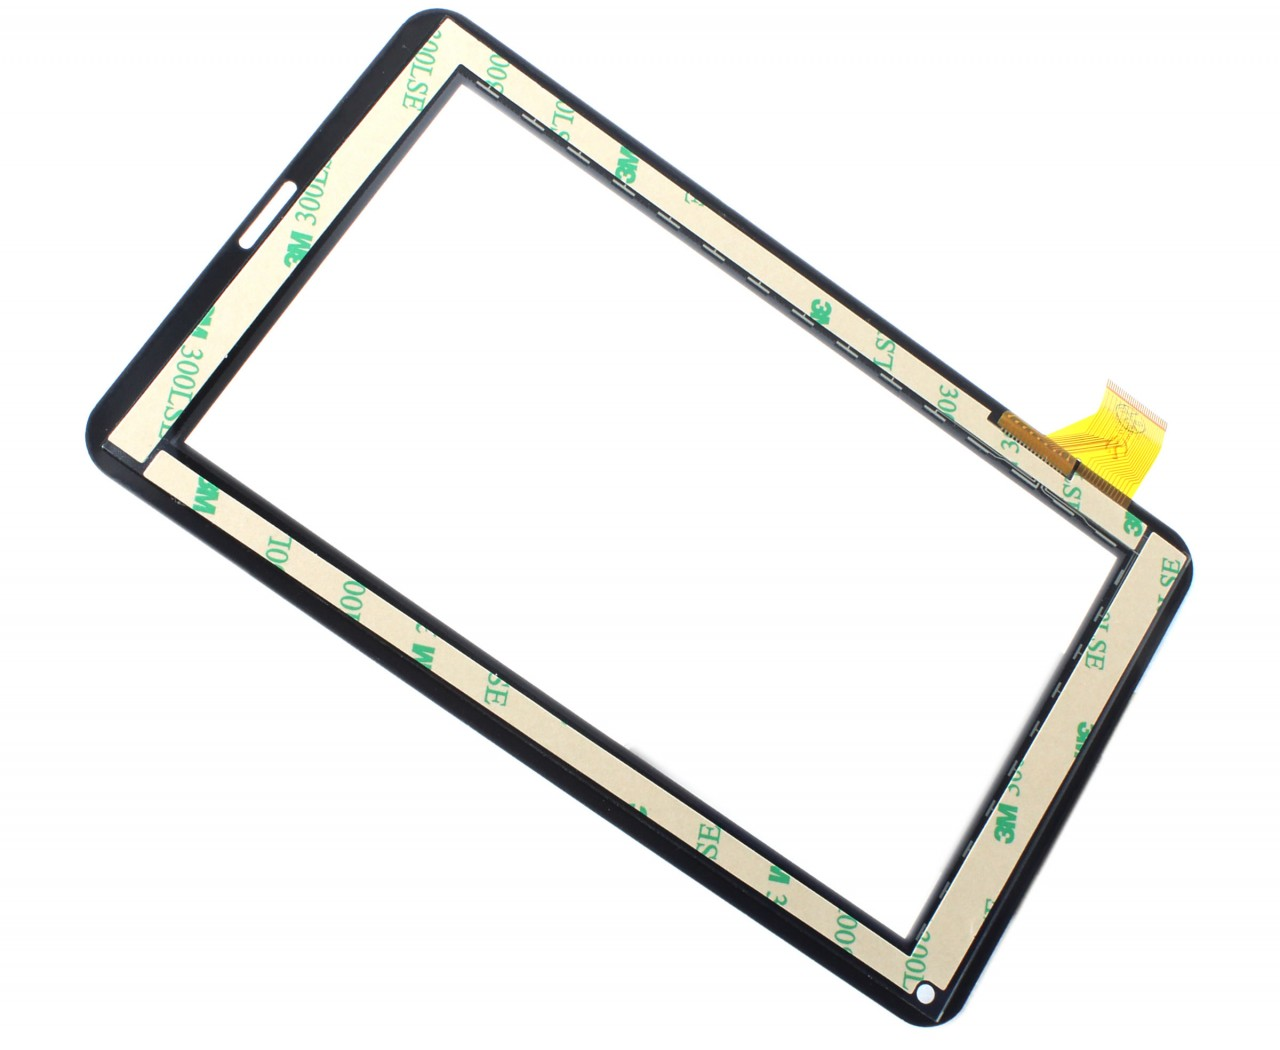 Touchscreen Digitizer Serioux Vision SMO9SG Geam Sticla Tableta imagine powerlaptop.ro 2021